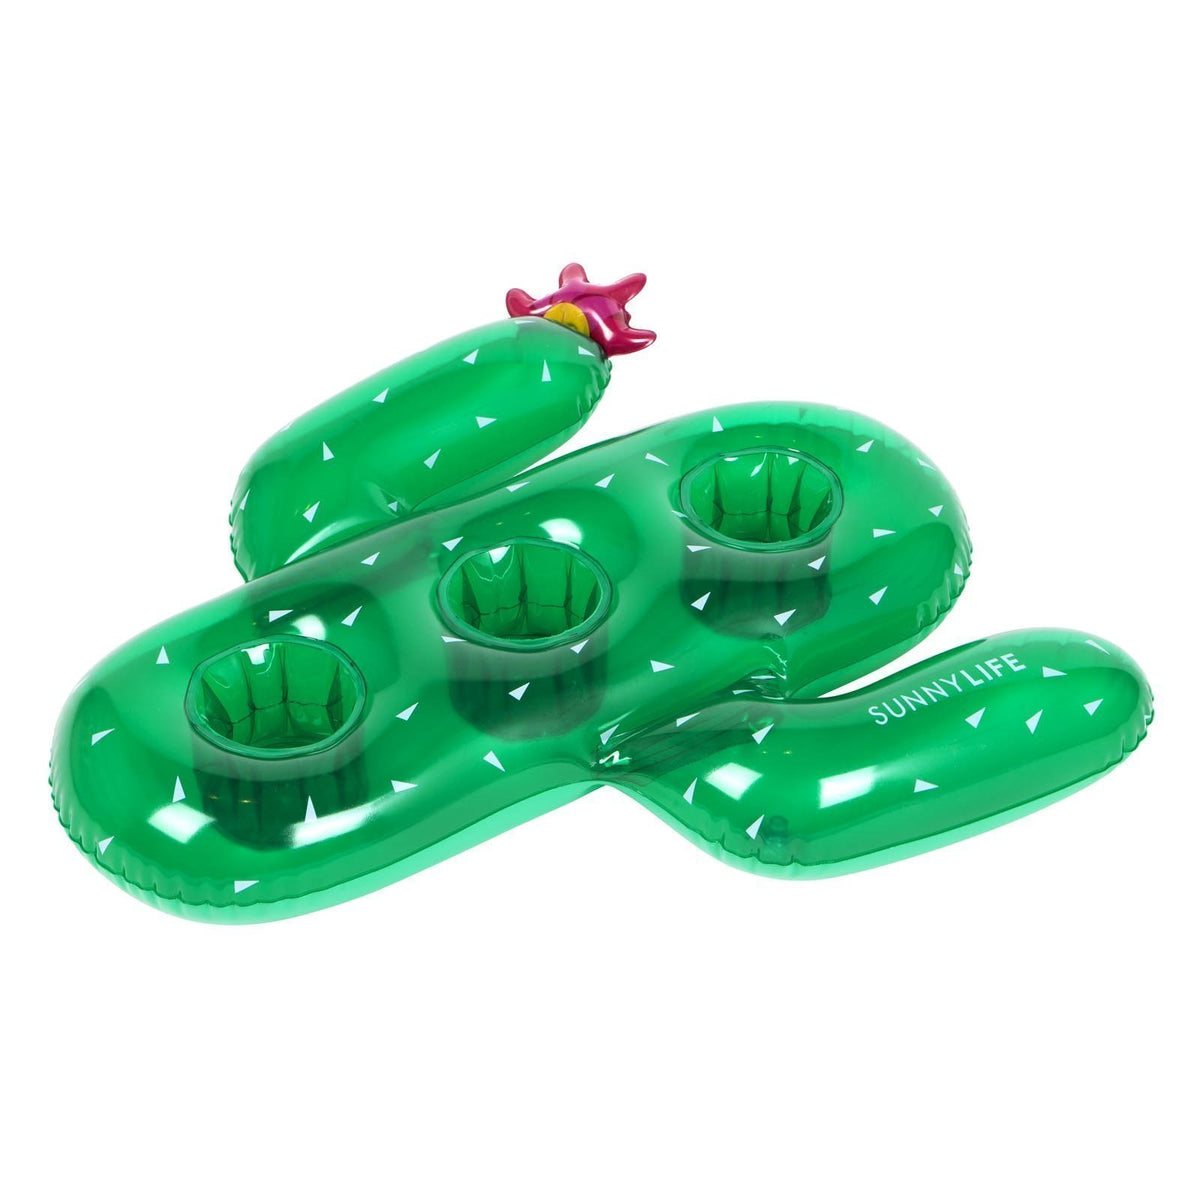 Sunnylife | Inflatable Drink Holders | Cactus